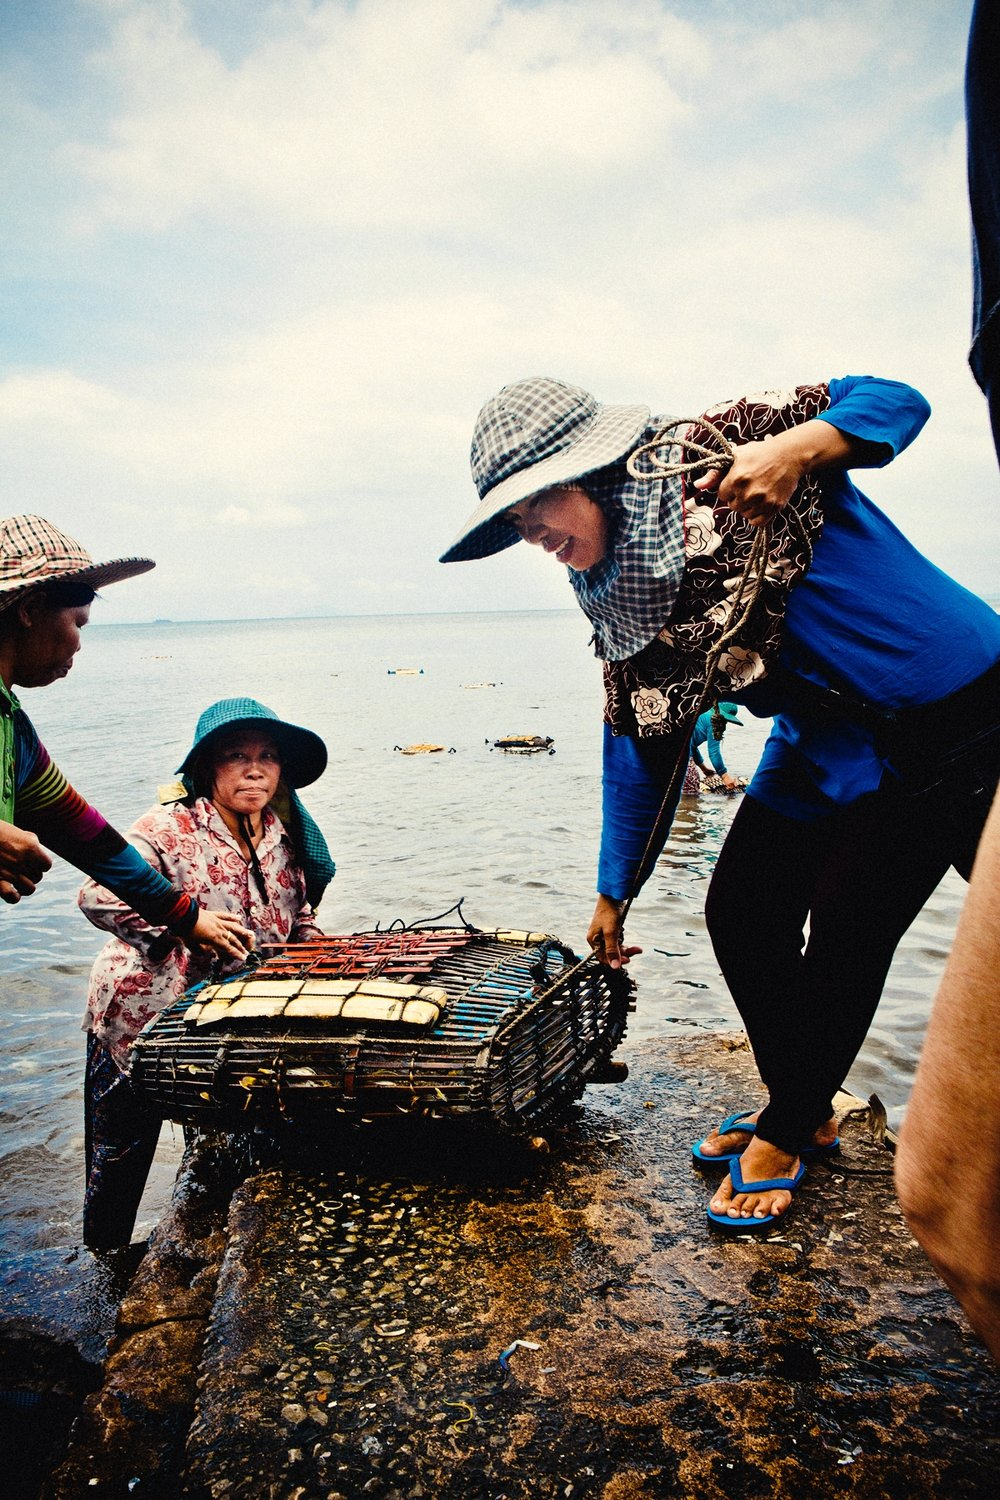 Getting the crab cage from the sea just outside the crab market.